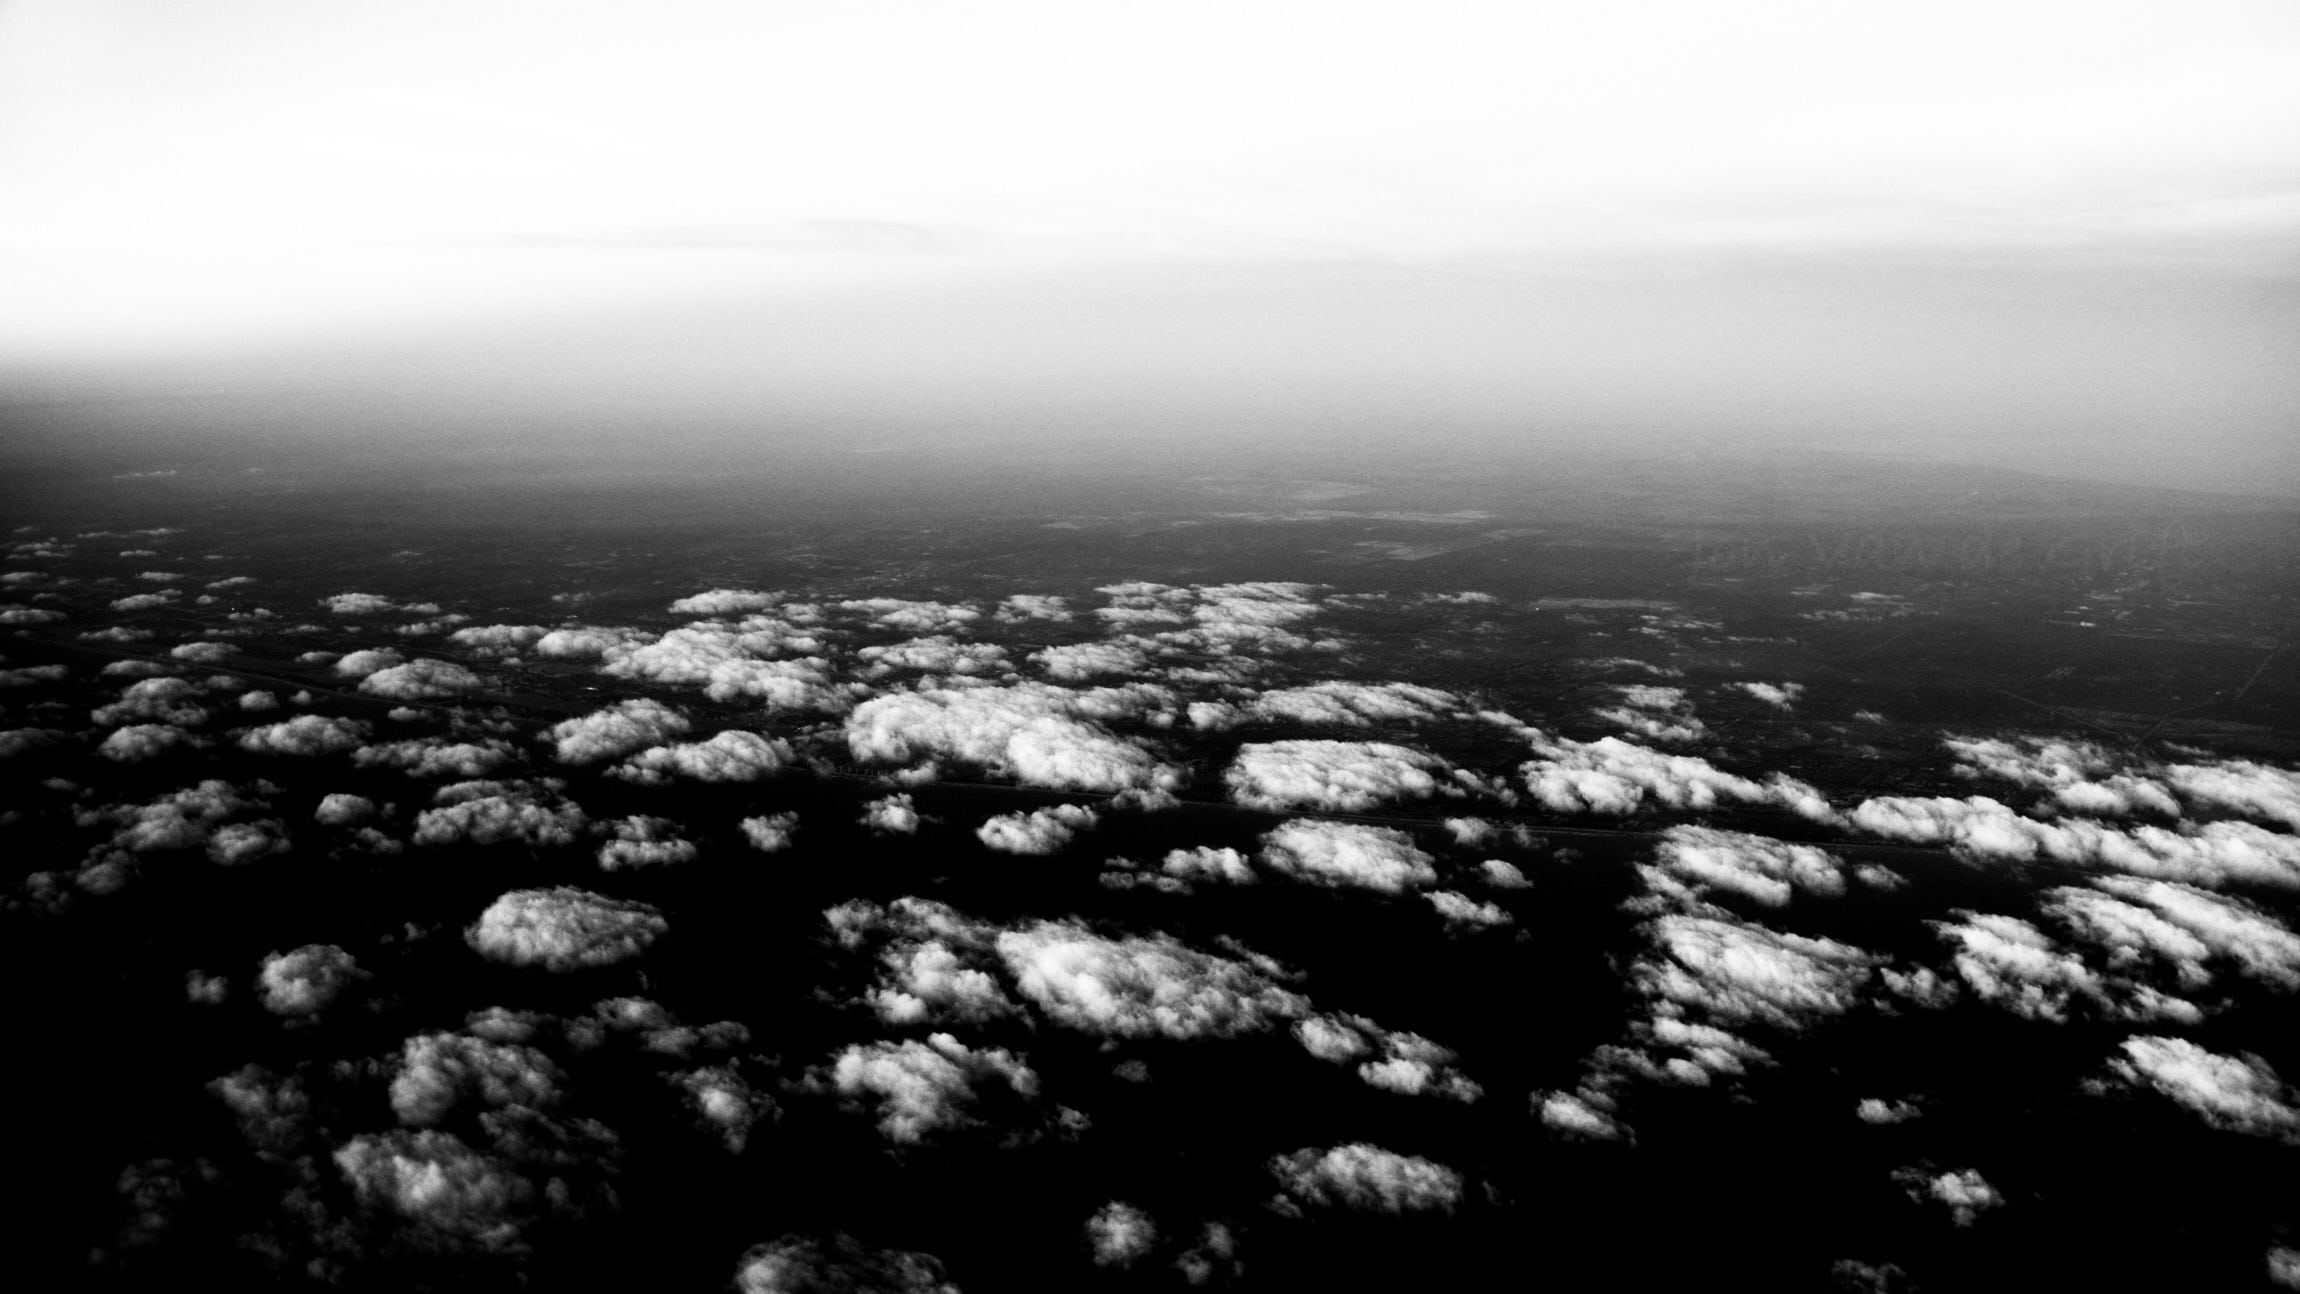 Black and white aerial photograph of clouds over land.